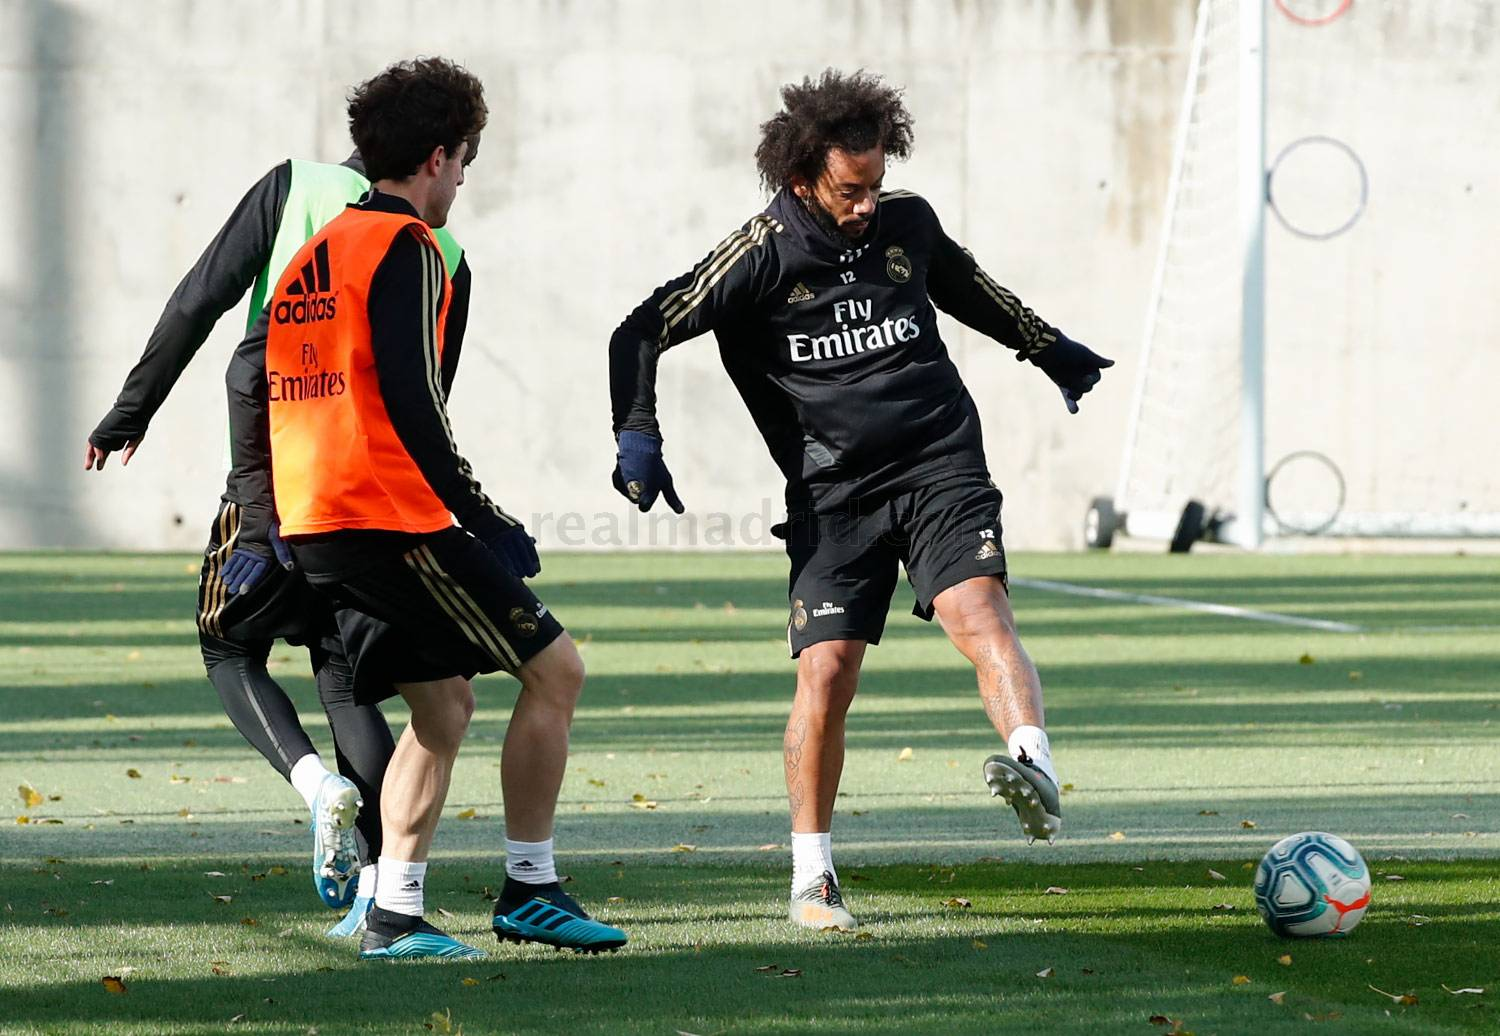 Real Madrid - Entrenamiento del Real Madrid  - 14-11-2019